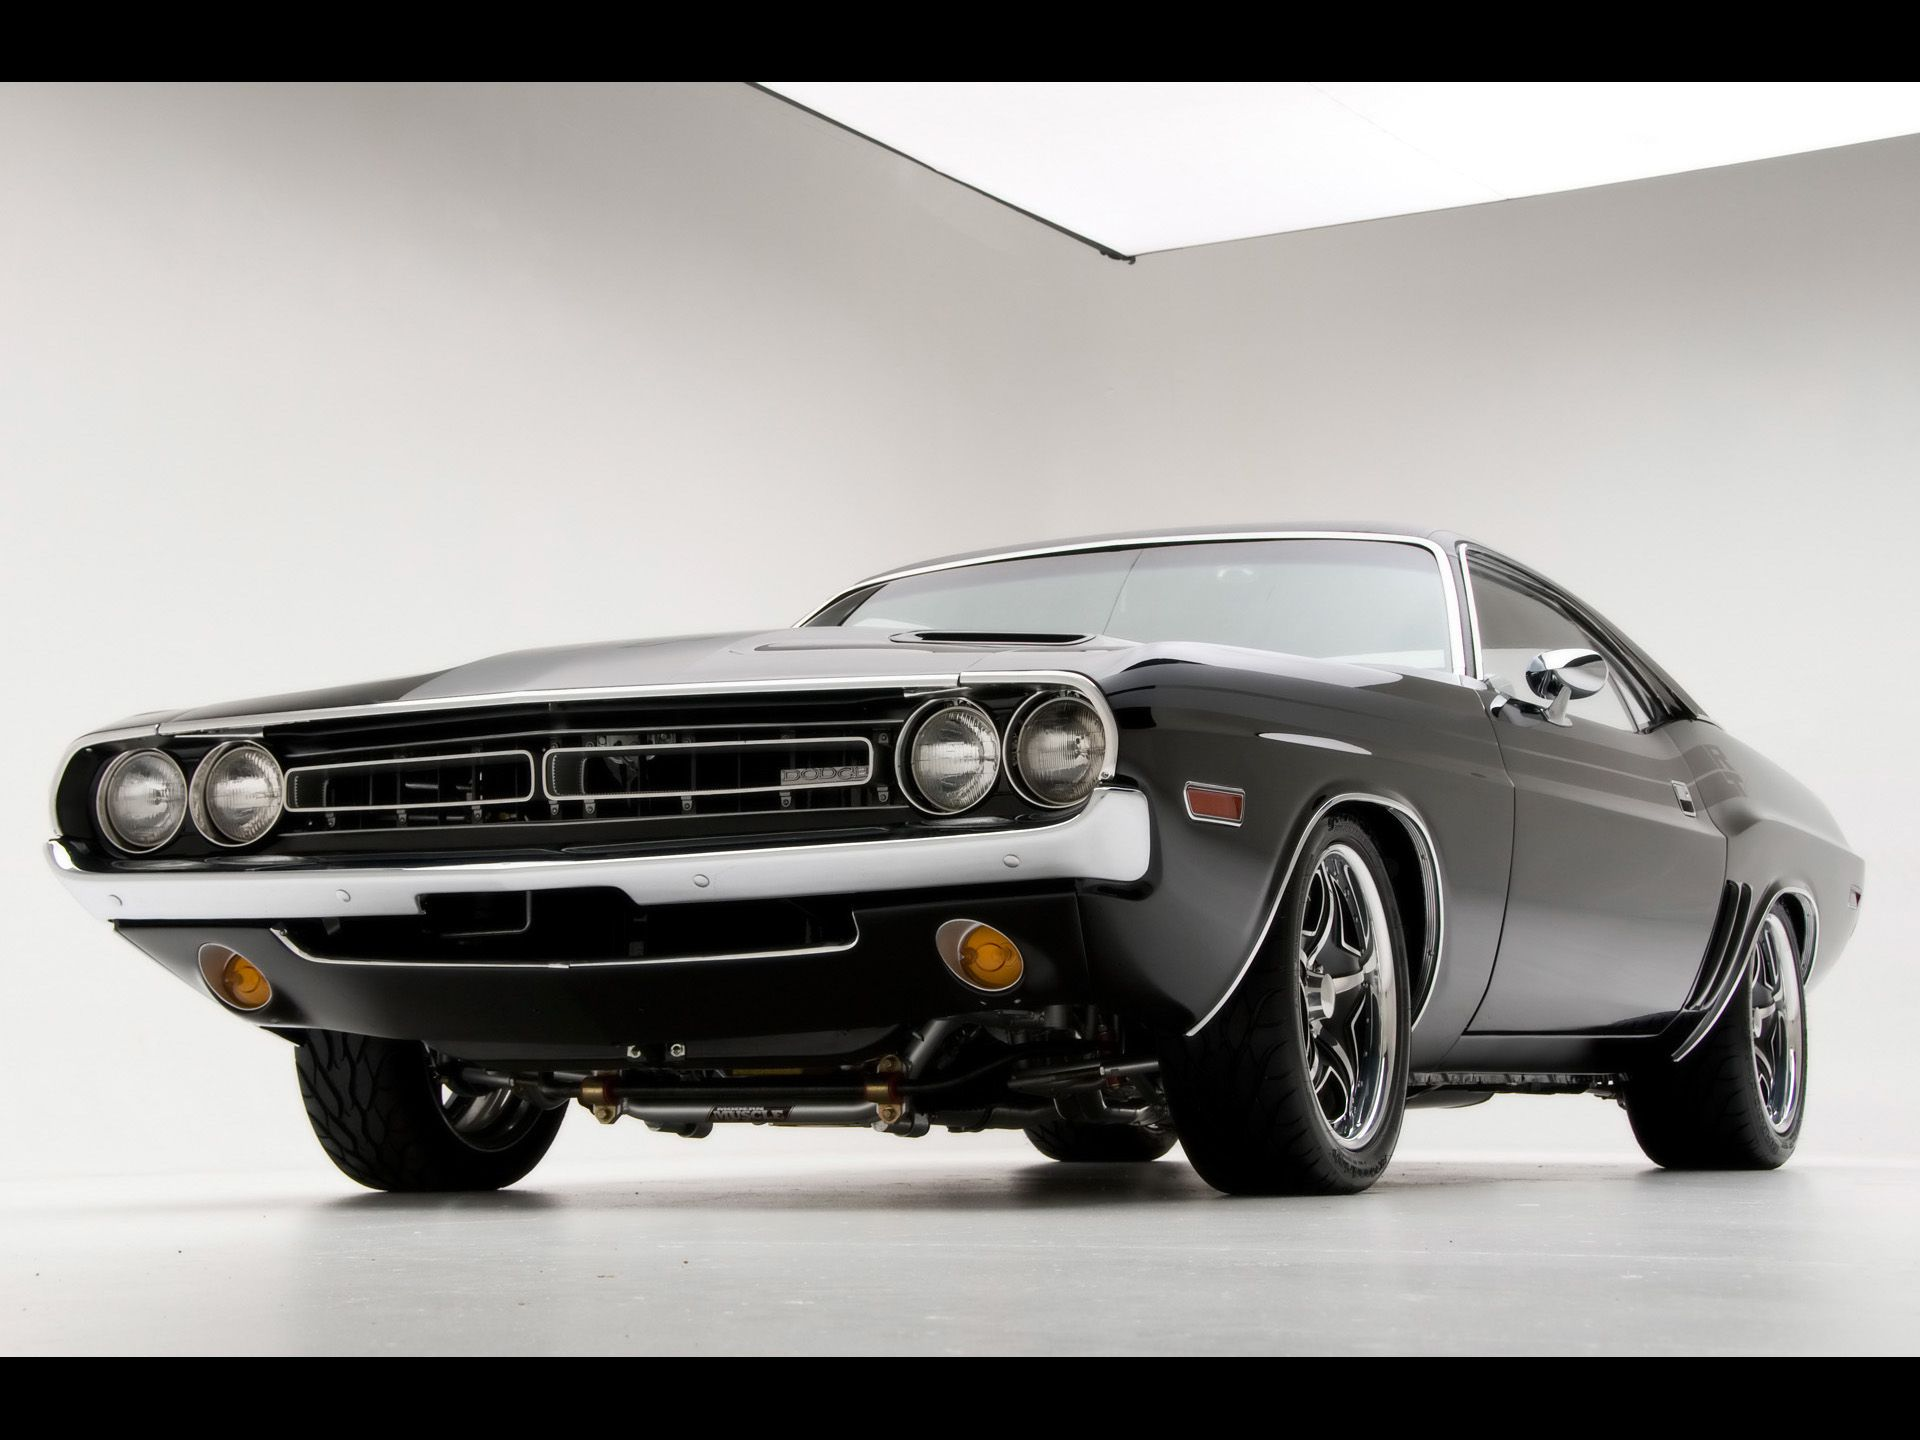 Classic Dodge Muscle Cars Wallpapers Top Free Classic Dodge Muscle